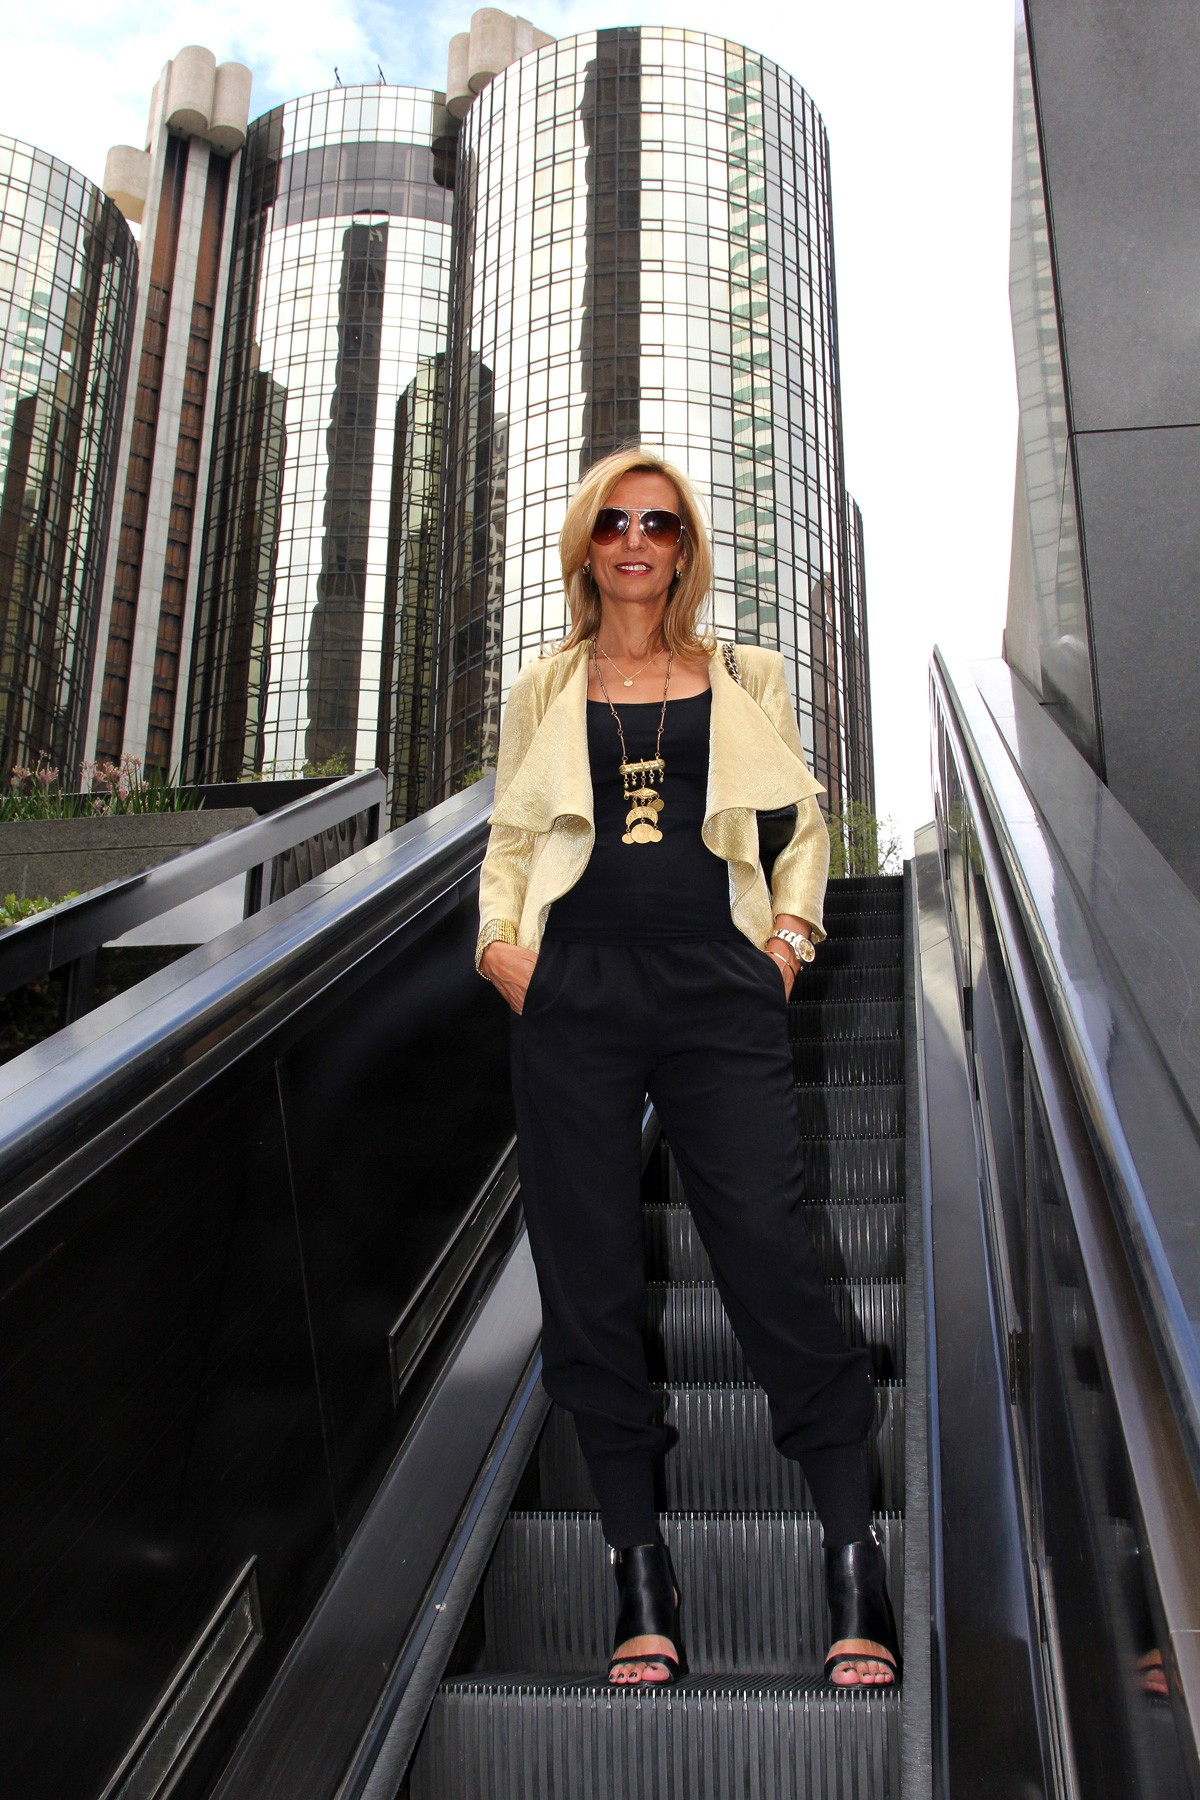 visiting-downtown-los-angeles-wearing-my-soleil-jacket-www.jacketsociety.com(2)